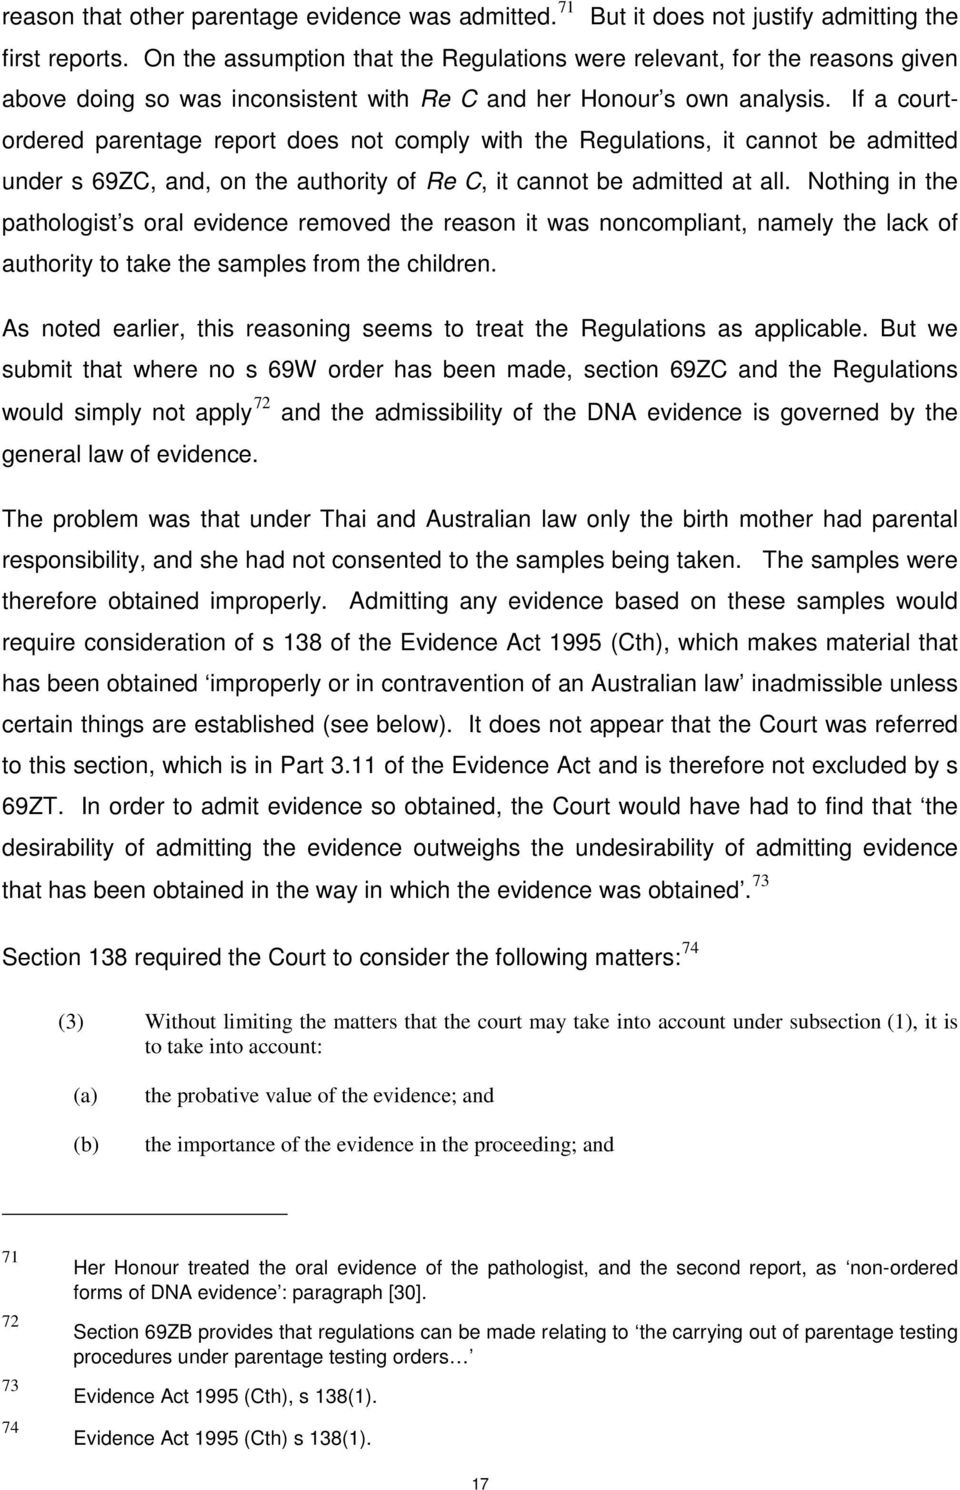 If a courtordered parentage report does not comply with the Regulations, it cannot be admitted under s 69ZC, and, on the authority of Re C, it cannot be admitted at all.